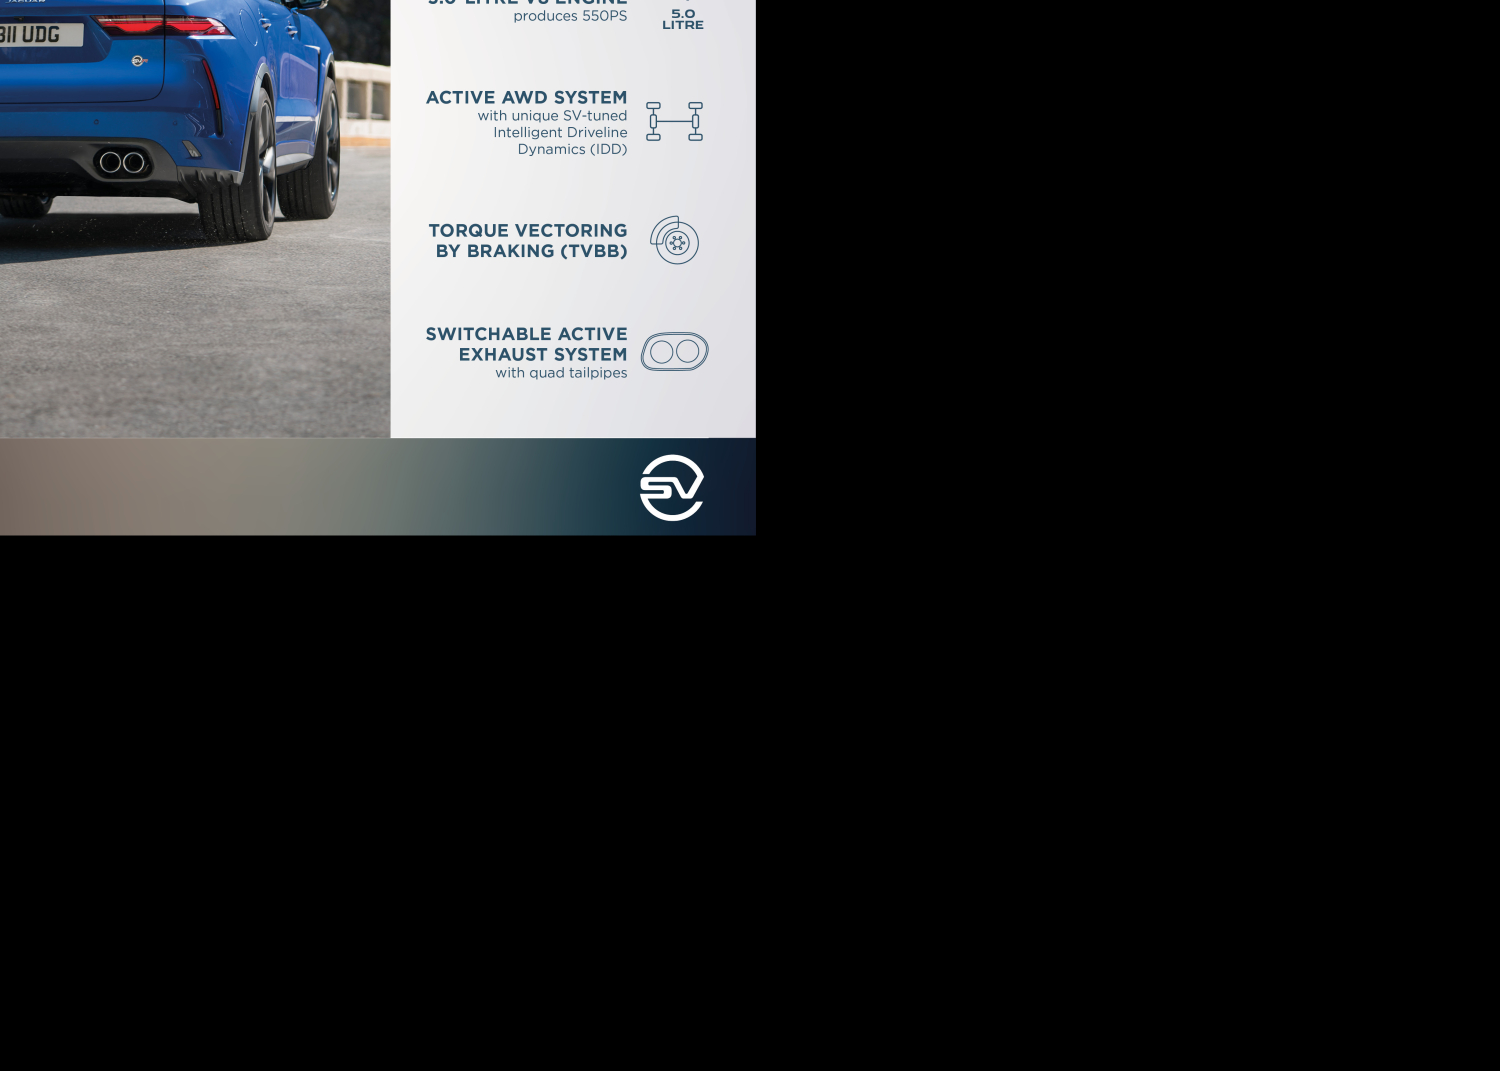 New Jaguar F-pace Svr: Performance Suv is Faster, more Luxurious and more Refined than Ever - Image 4